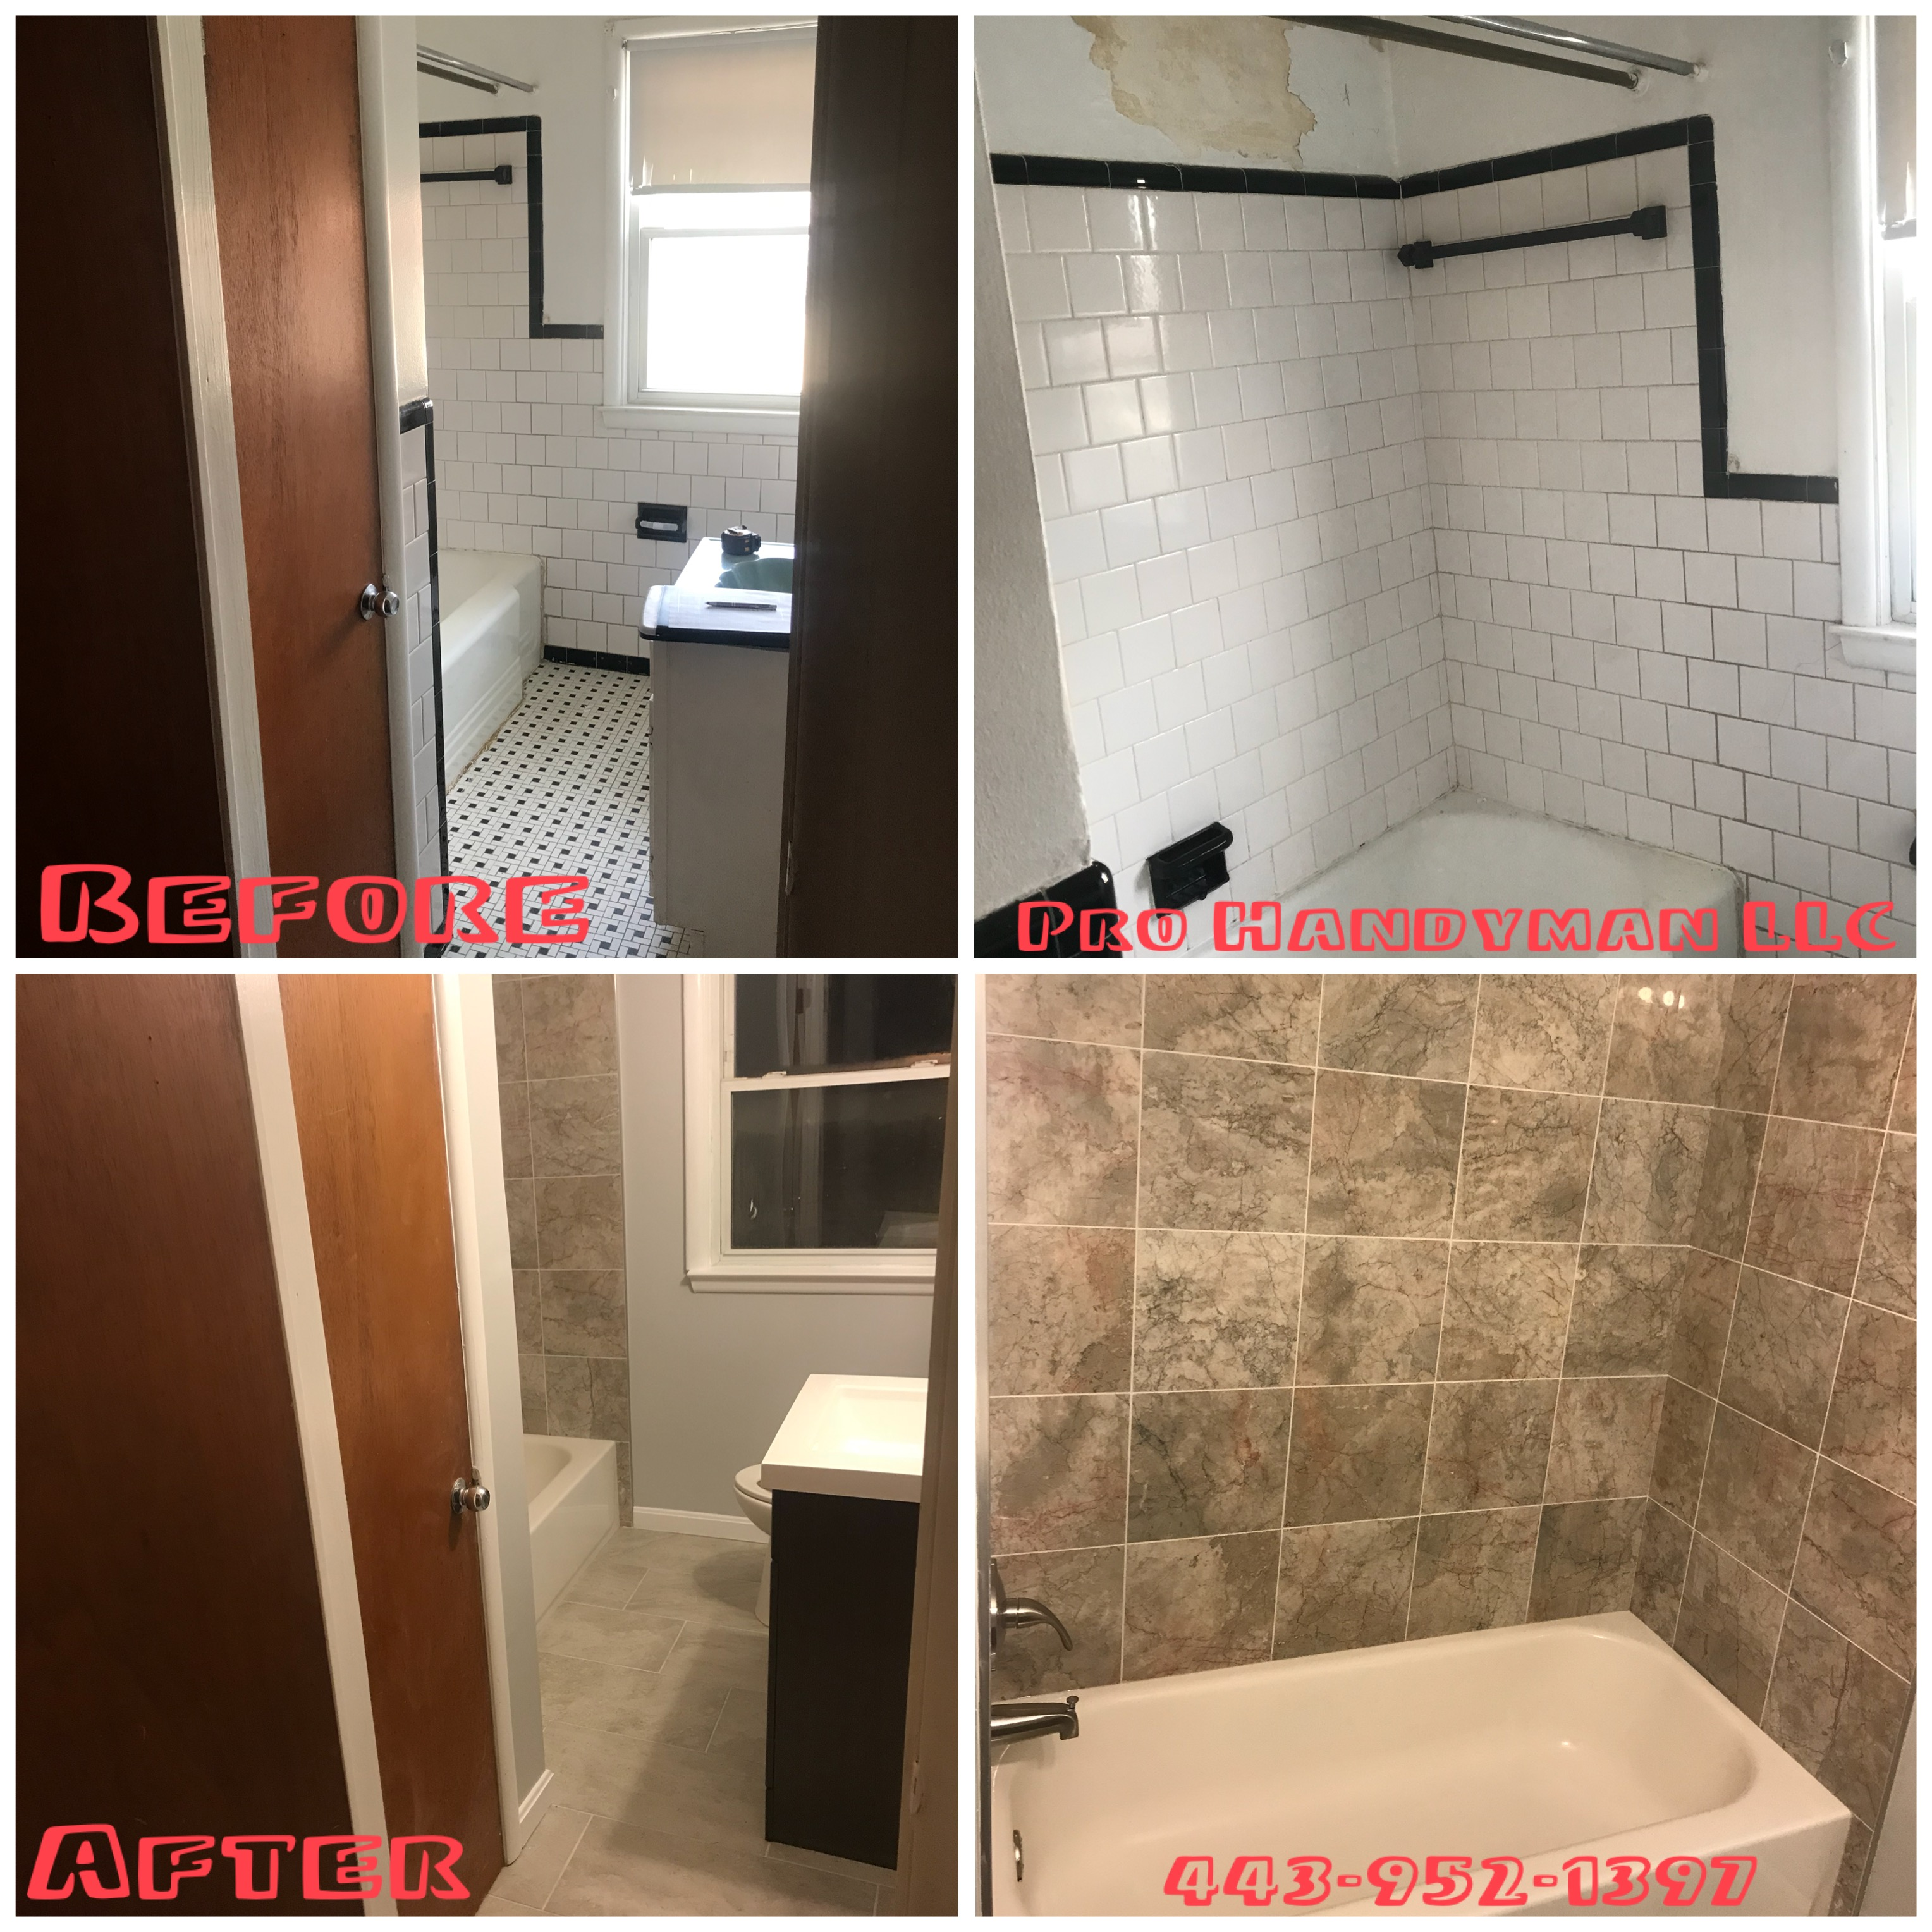 Bathroom Remodeling in Baltimore